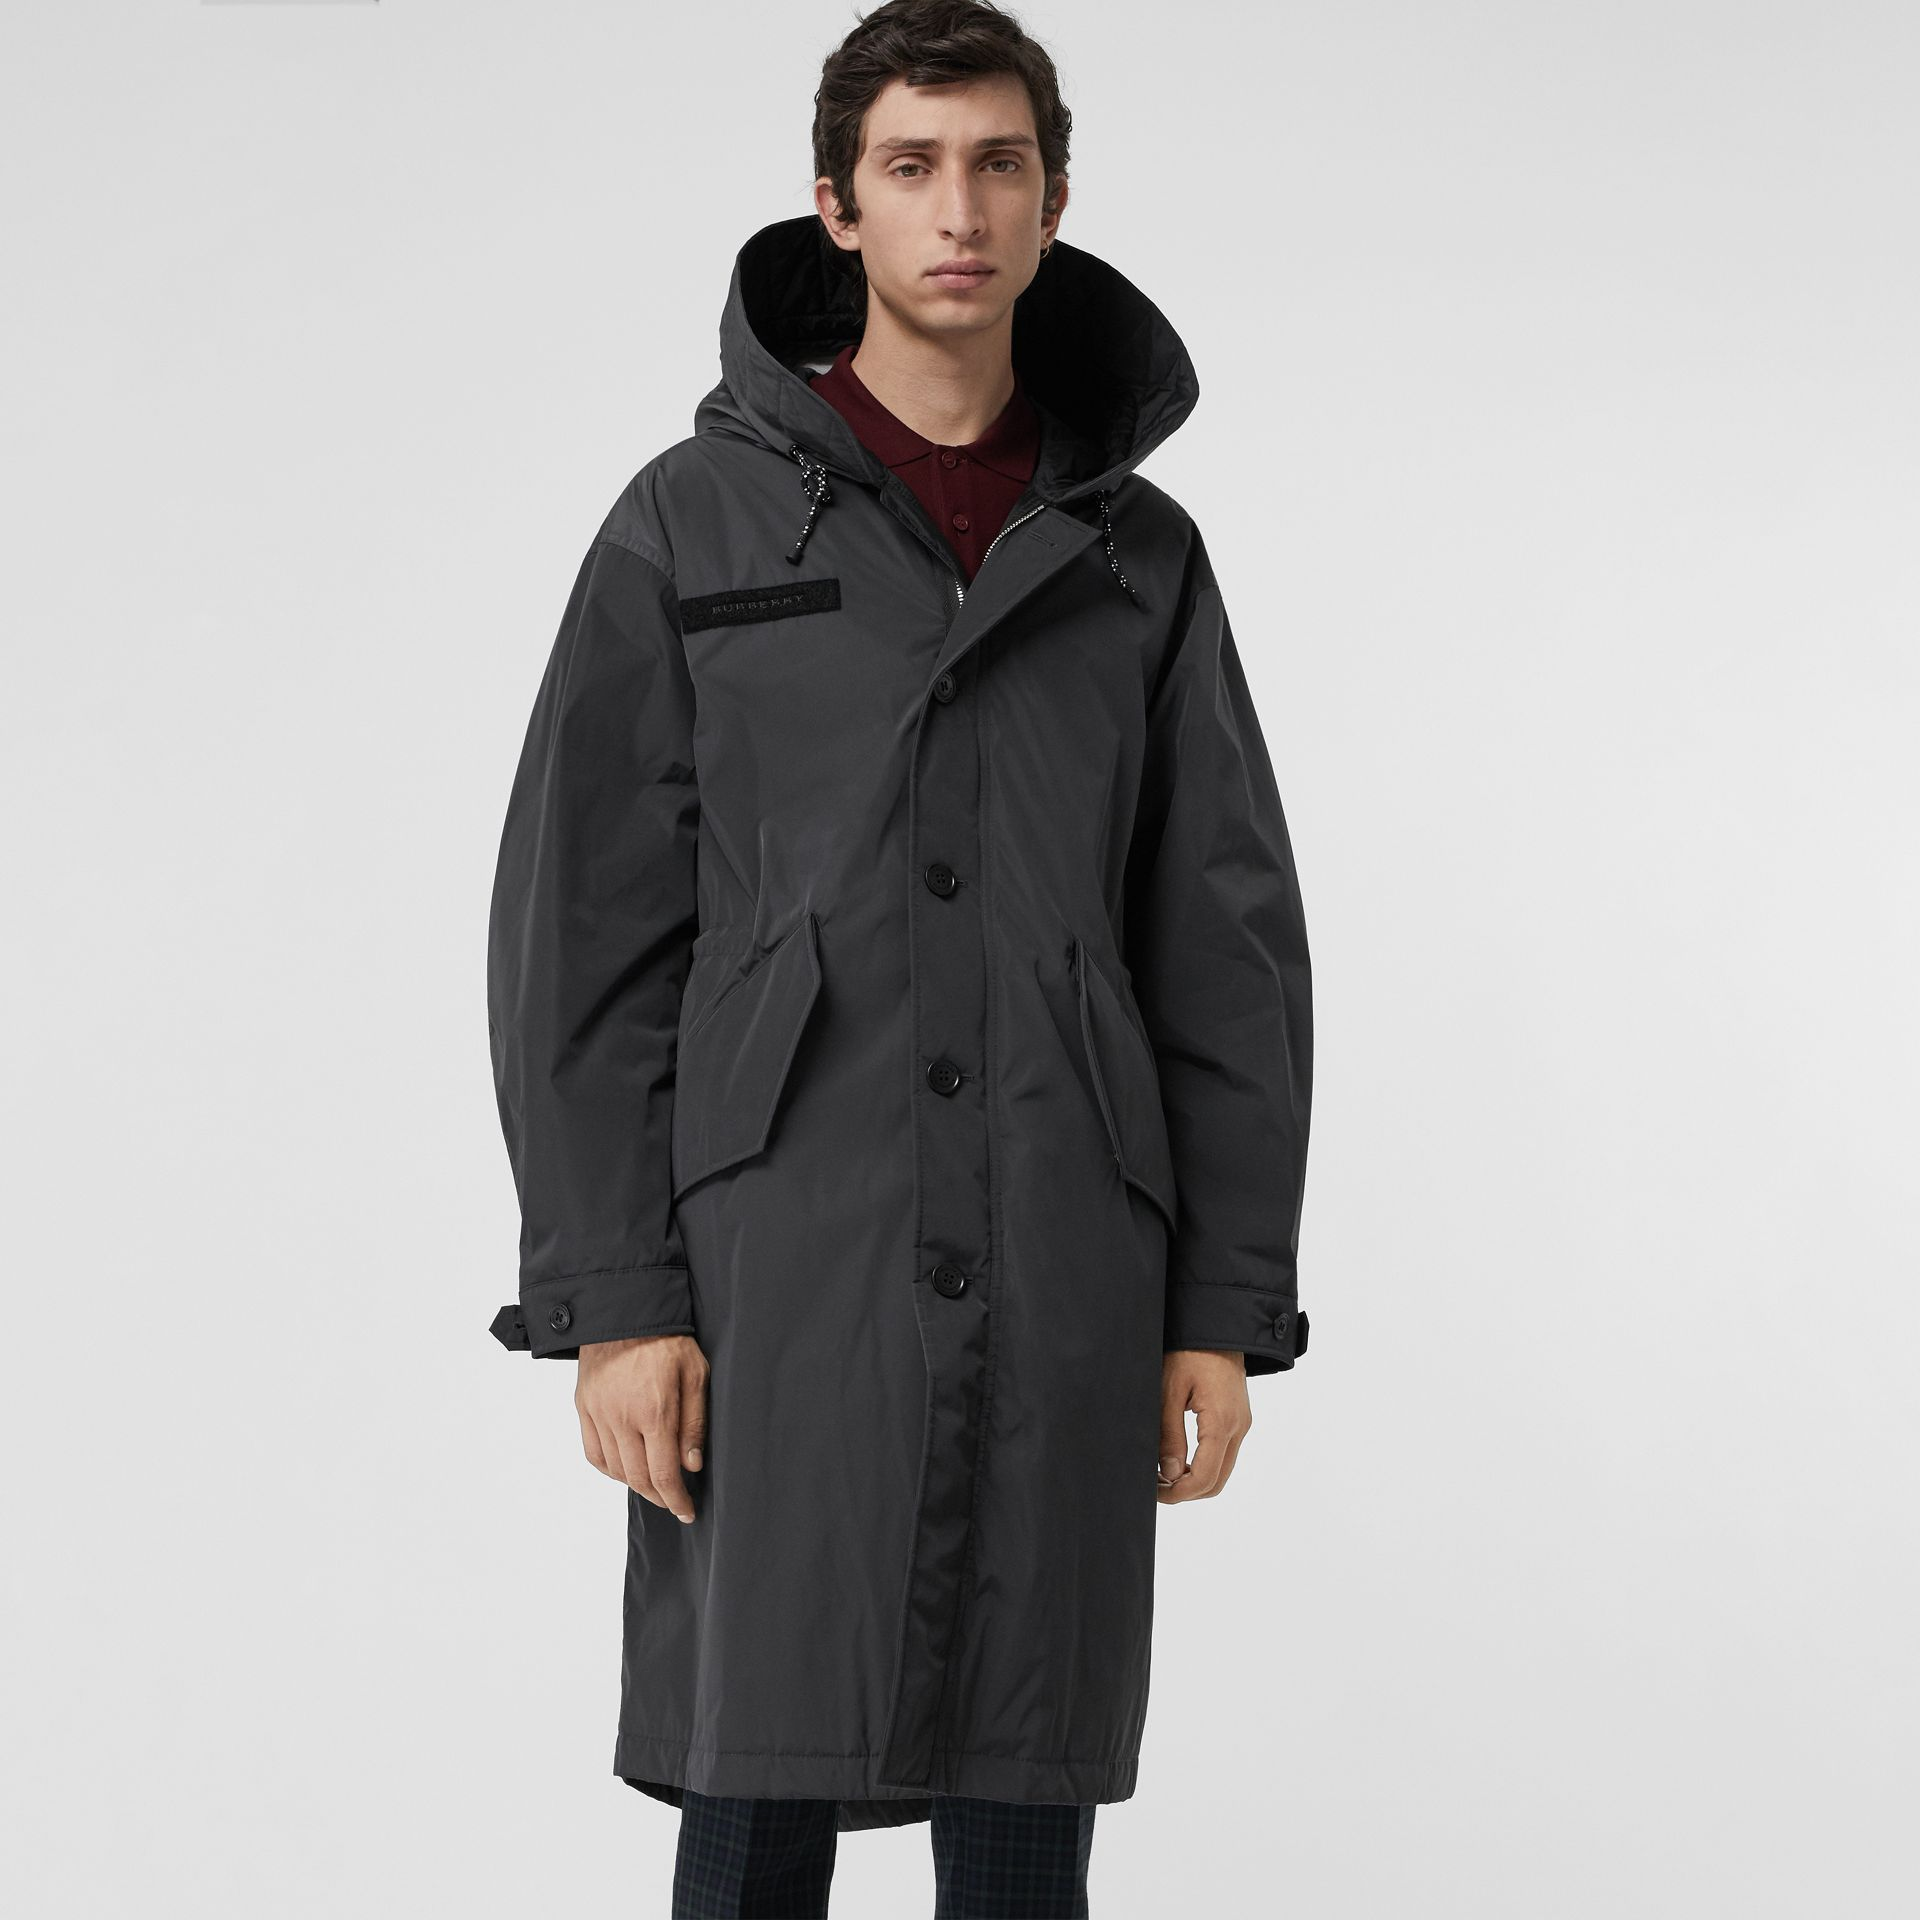 Quilt-lined Technical Nylon Parka in Dark Charcoal - Men | Burberry - gallery image 5